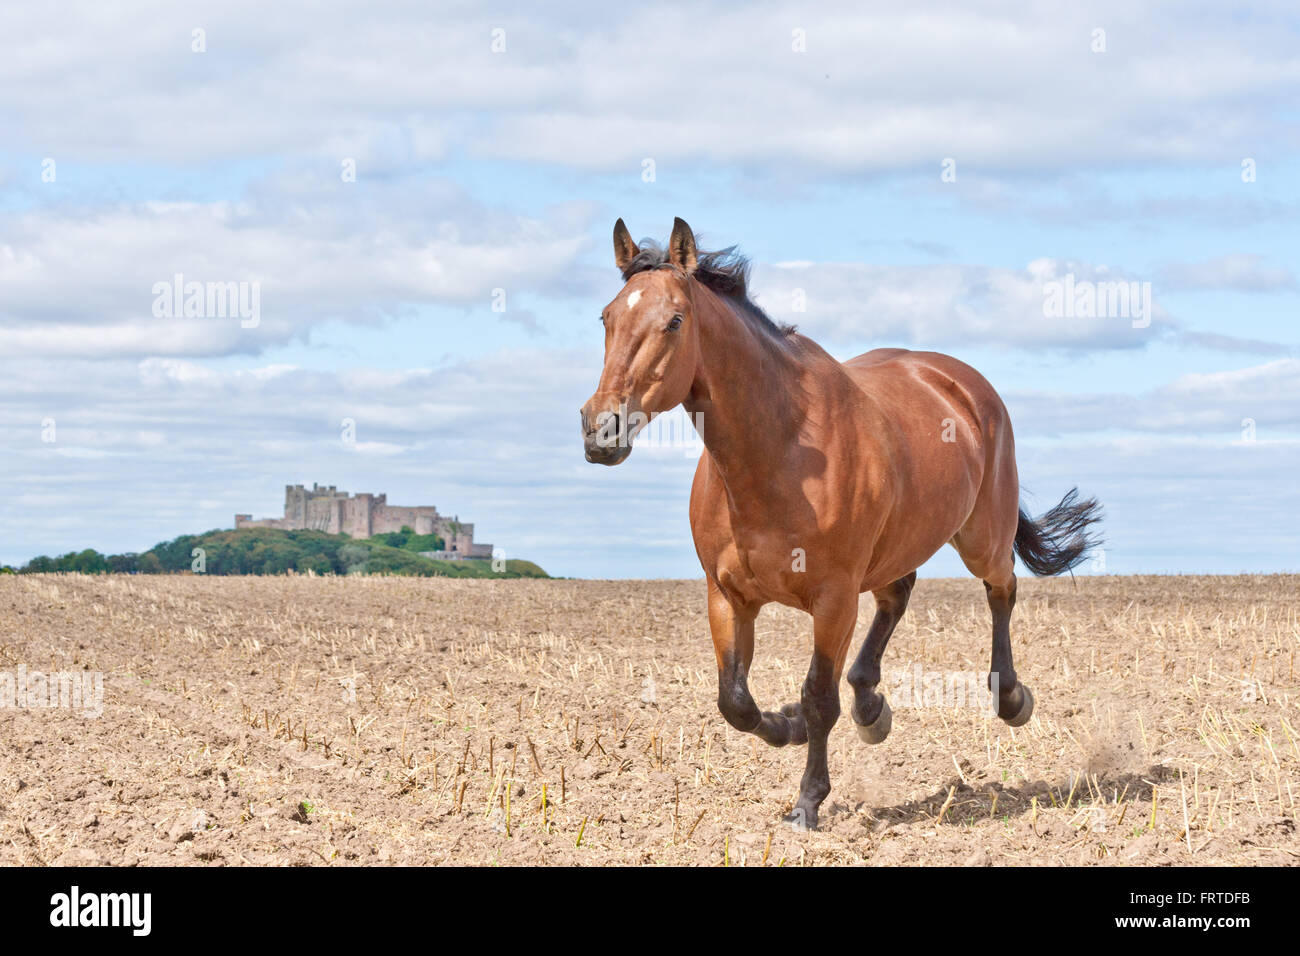 Galloping Horse Running From Castle Across A Ploughed Field Stock Photo Alamy